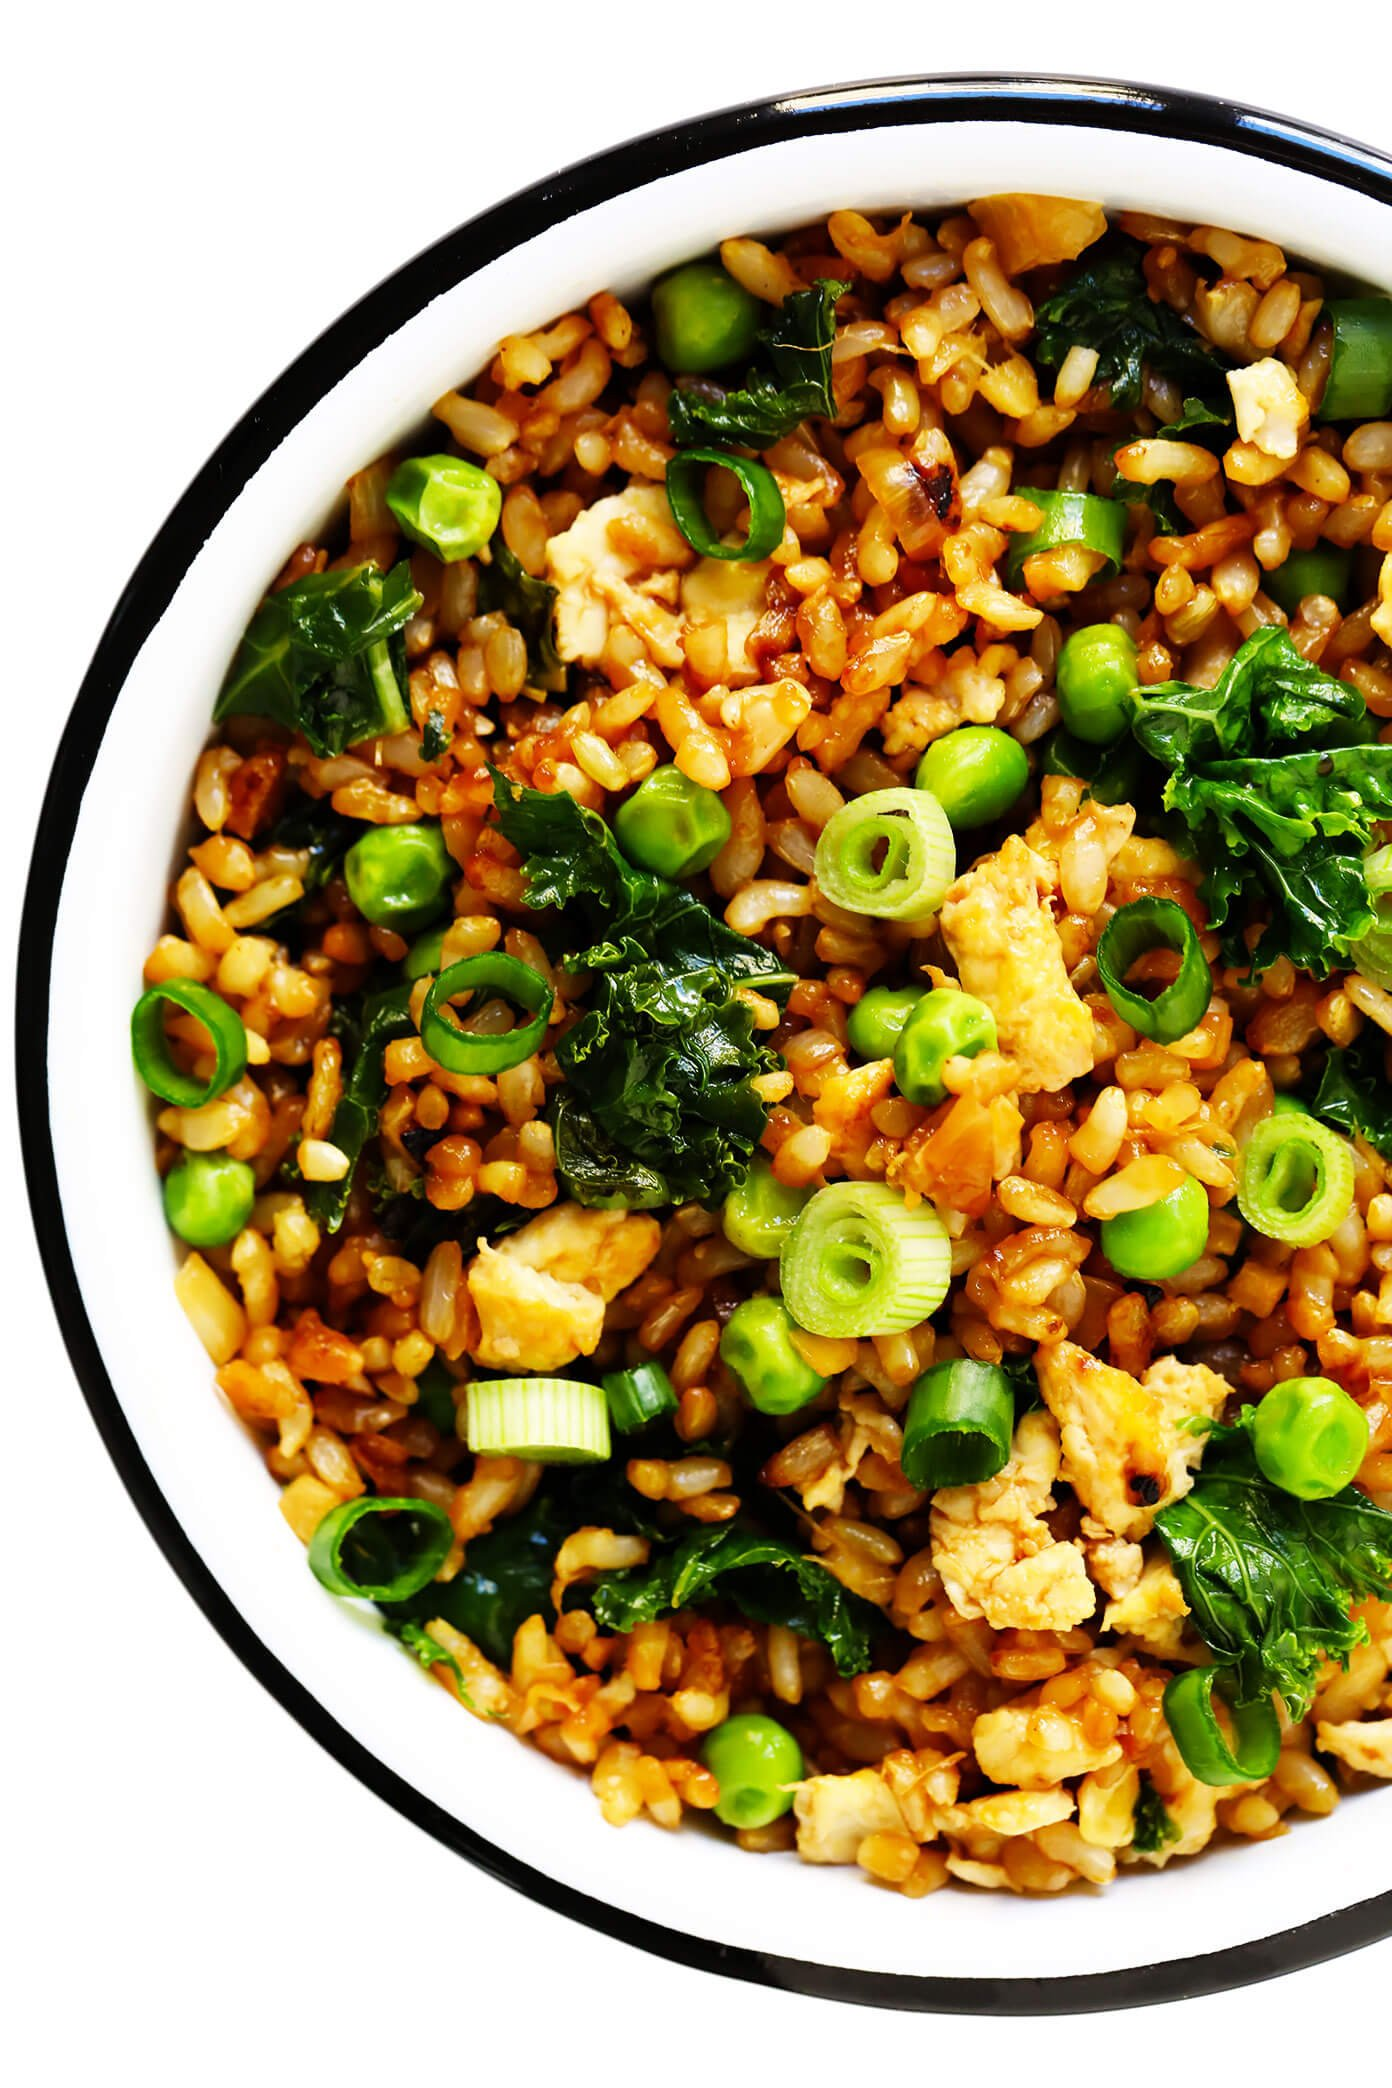 Ginger Kale Fried Rice In Bowl